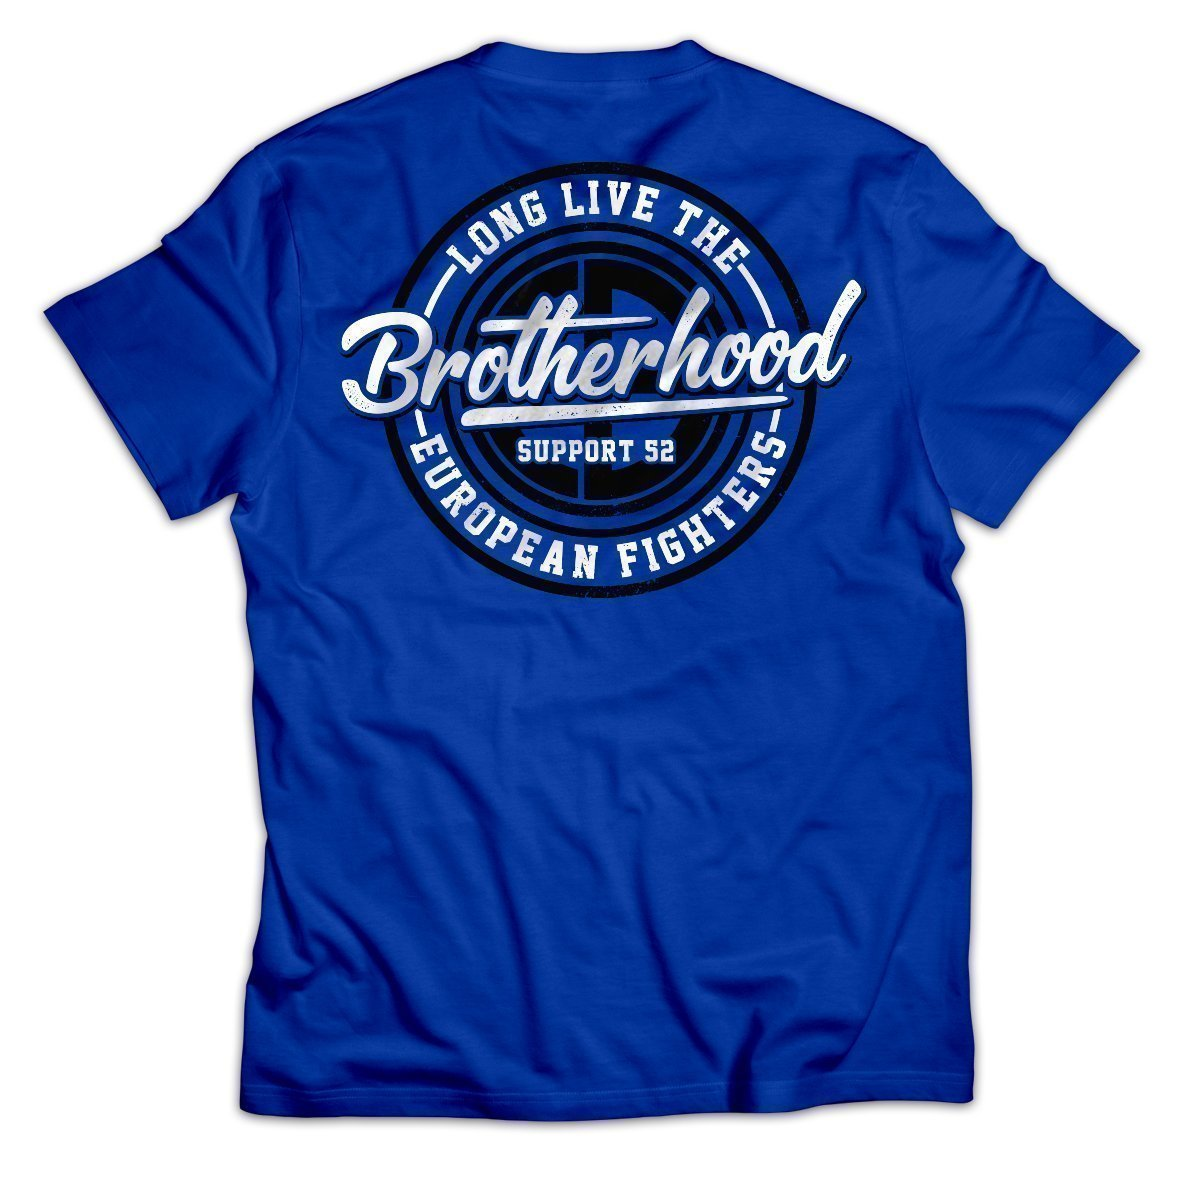 EuropeanFighters_Shirt_RoyalBlue_Back